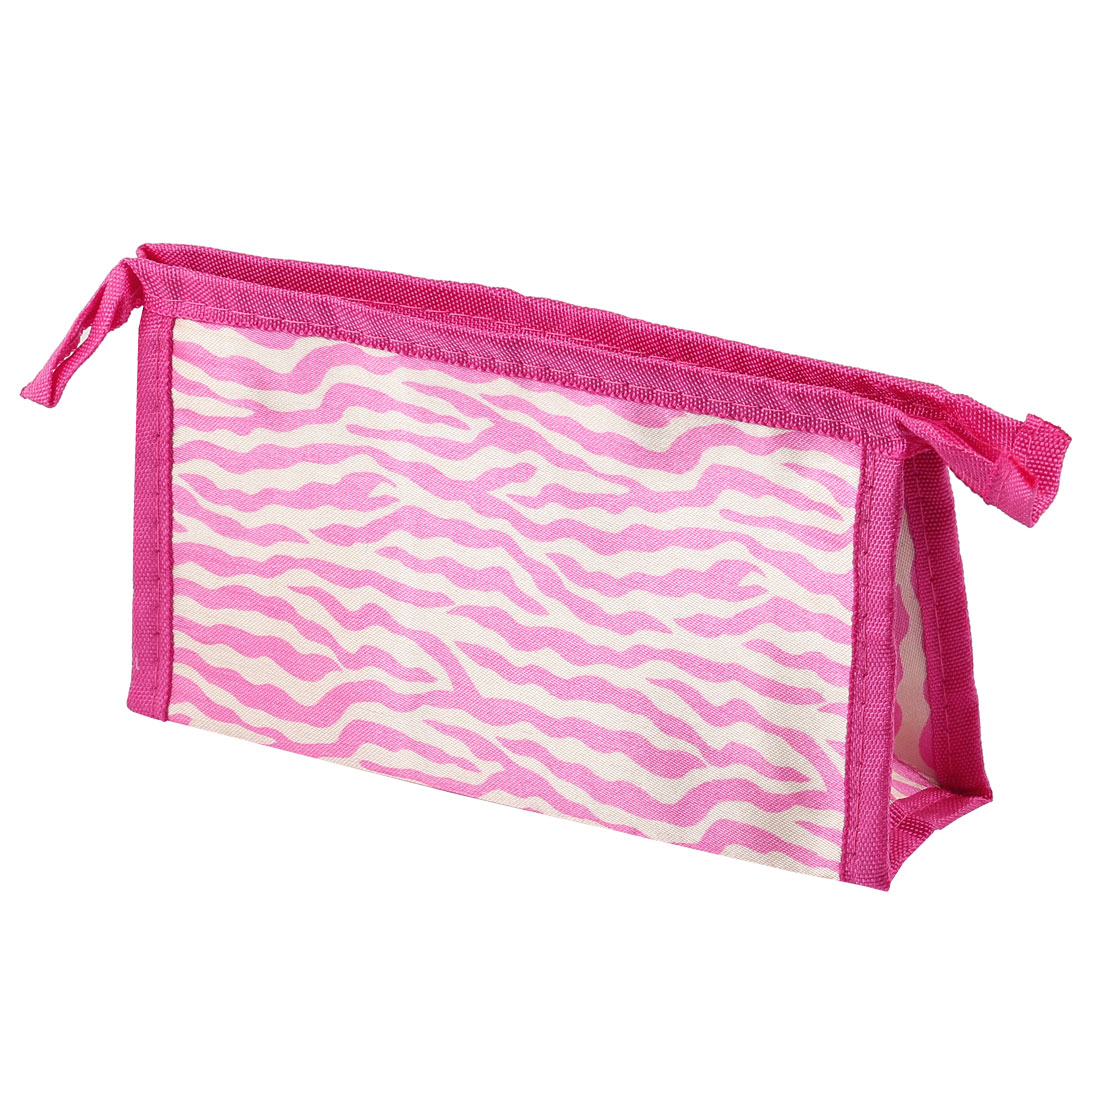 Pink Beige Nylon Zebra Print Zipper Closure Cosmetic Makeup Bag for Women